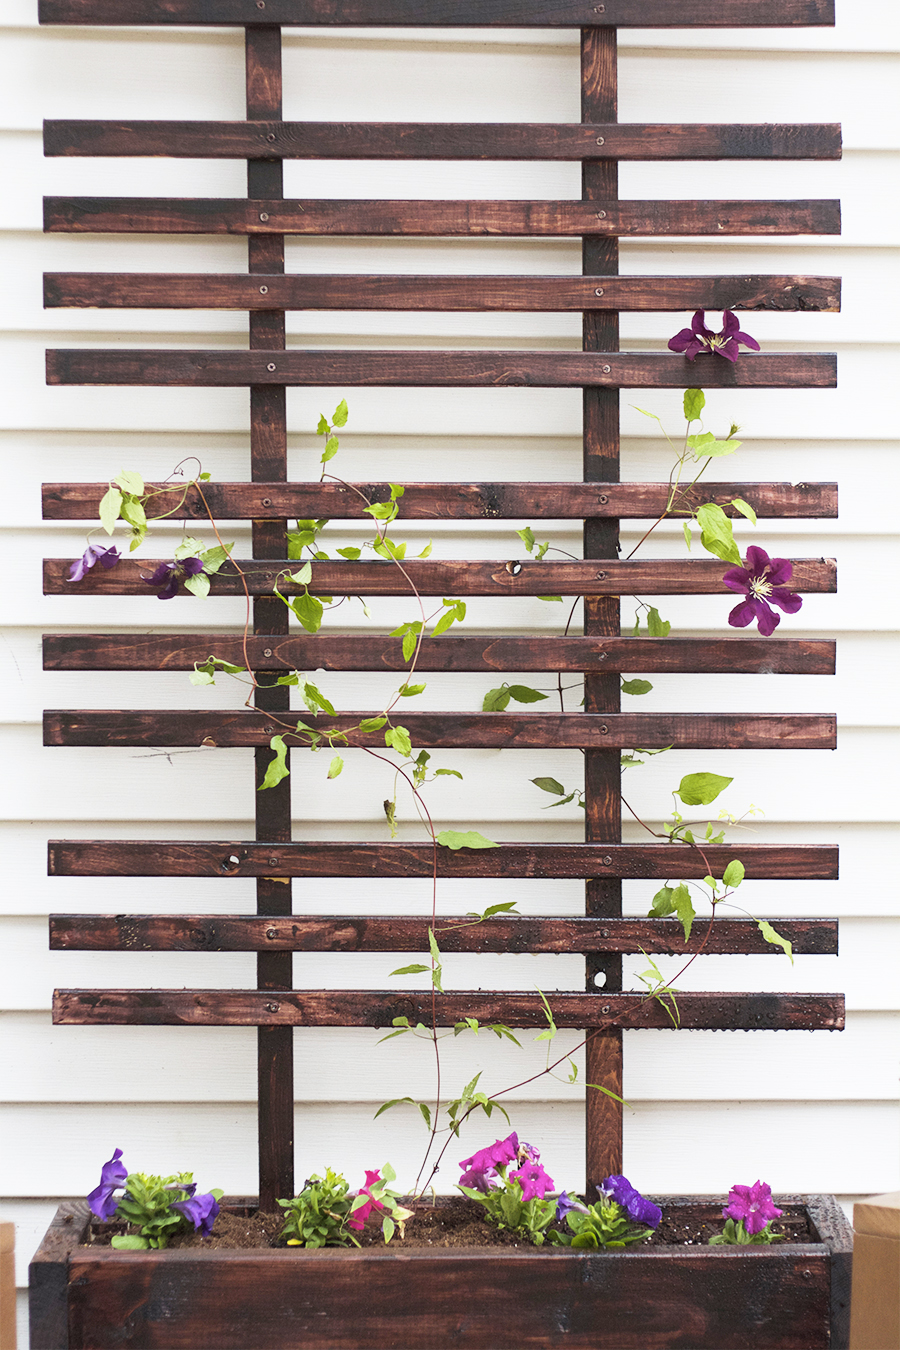 Diy trellis planter box tutorial giveaway deuce for Treillis support plante grimpante